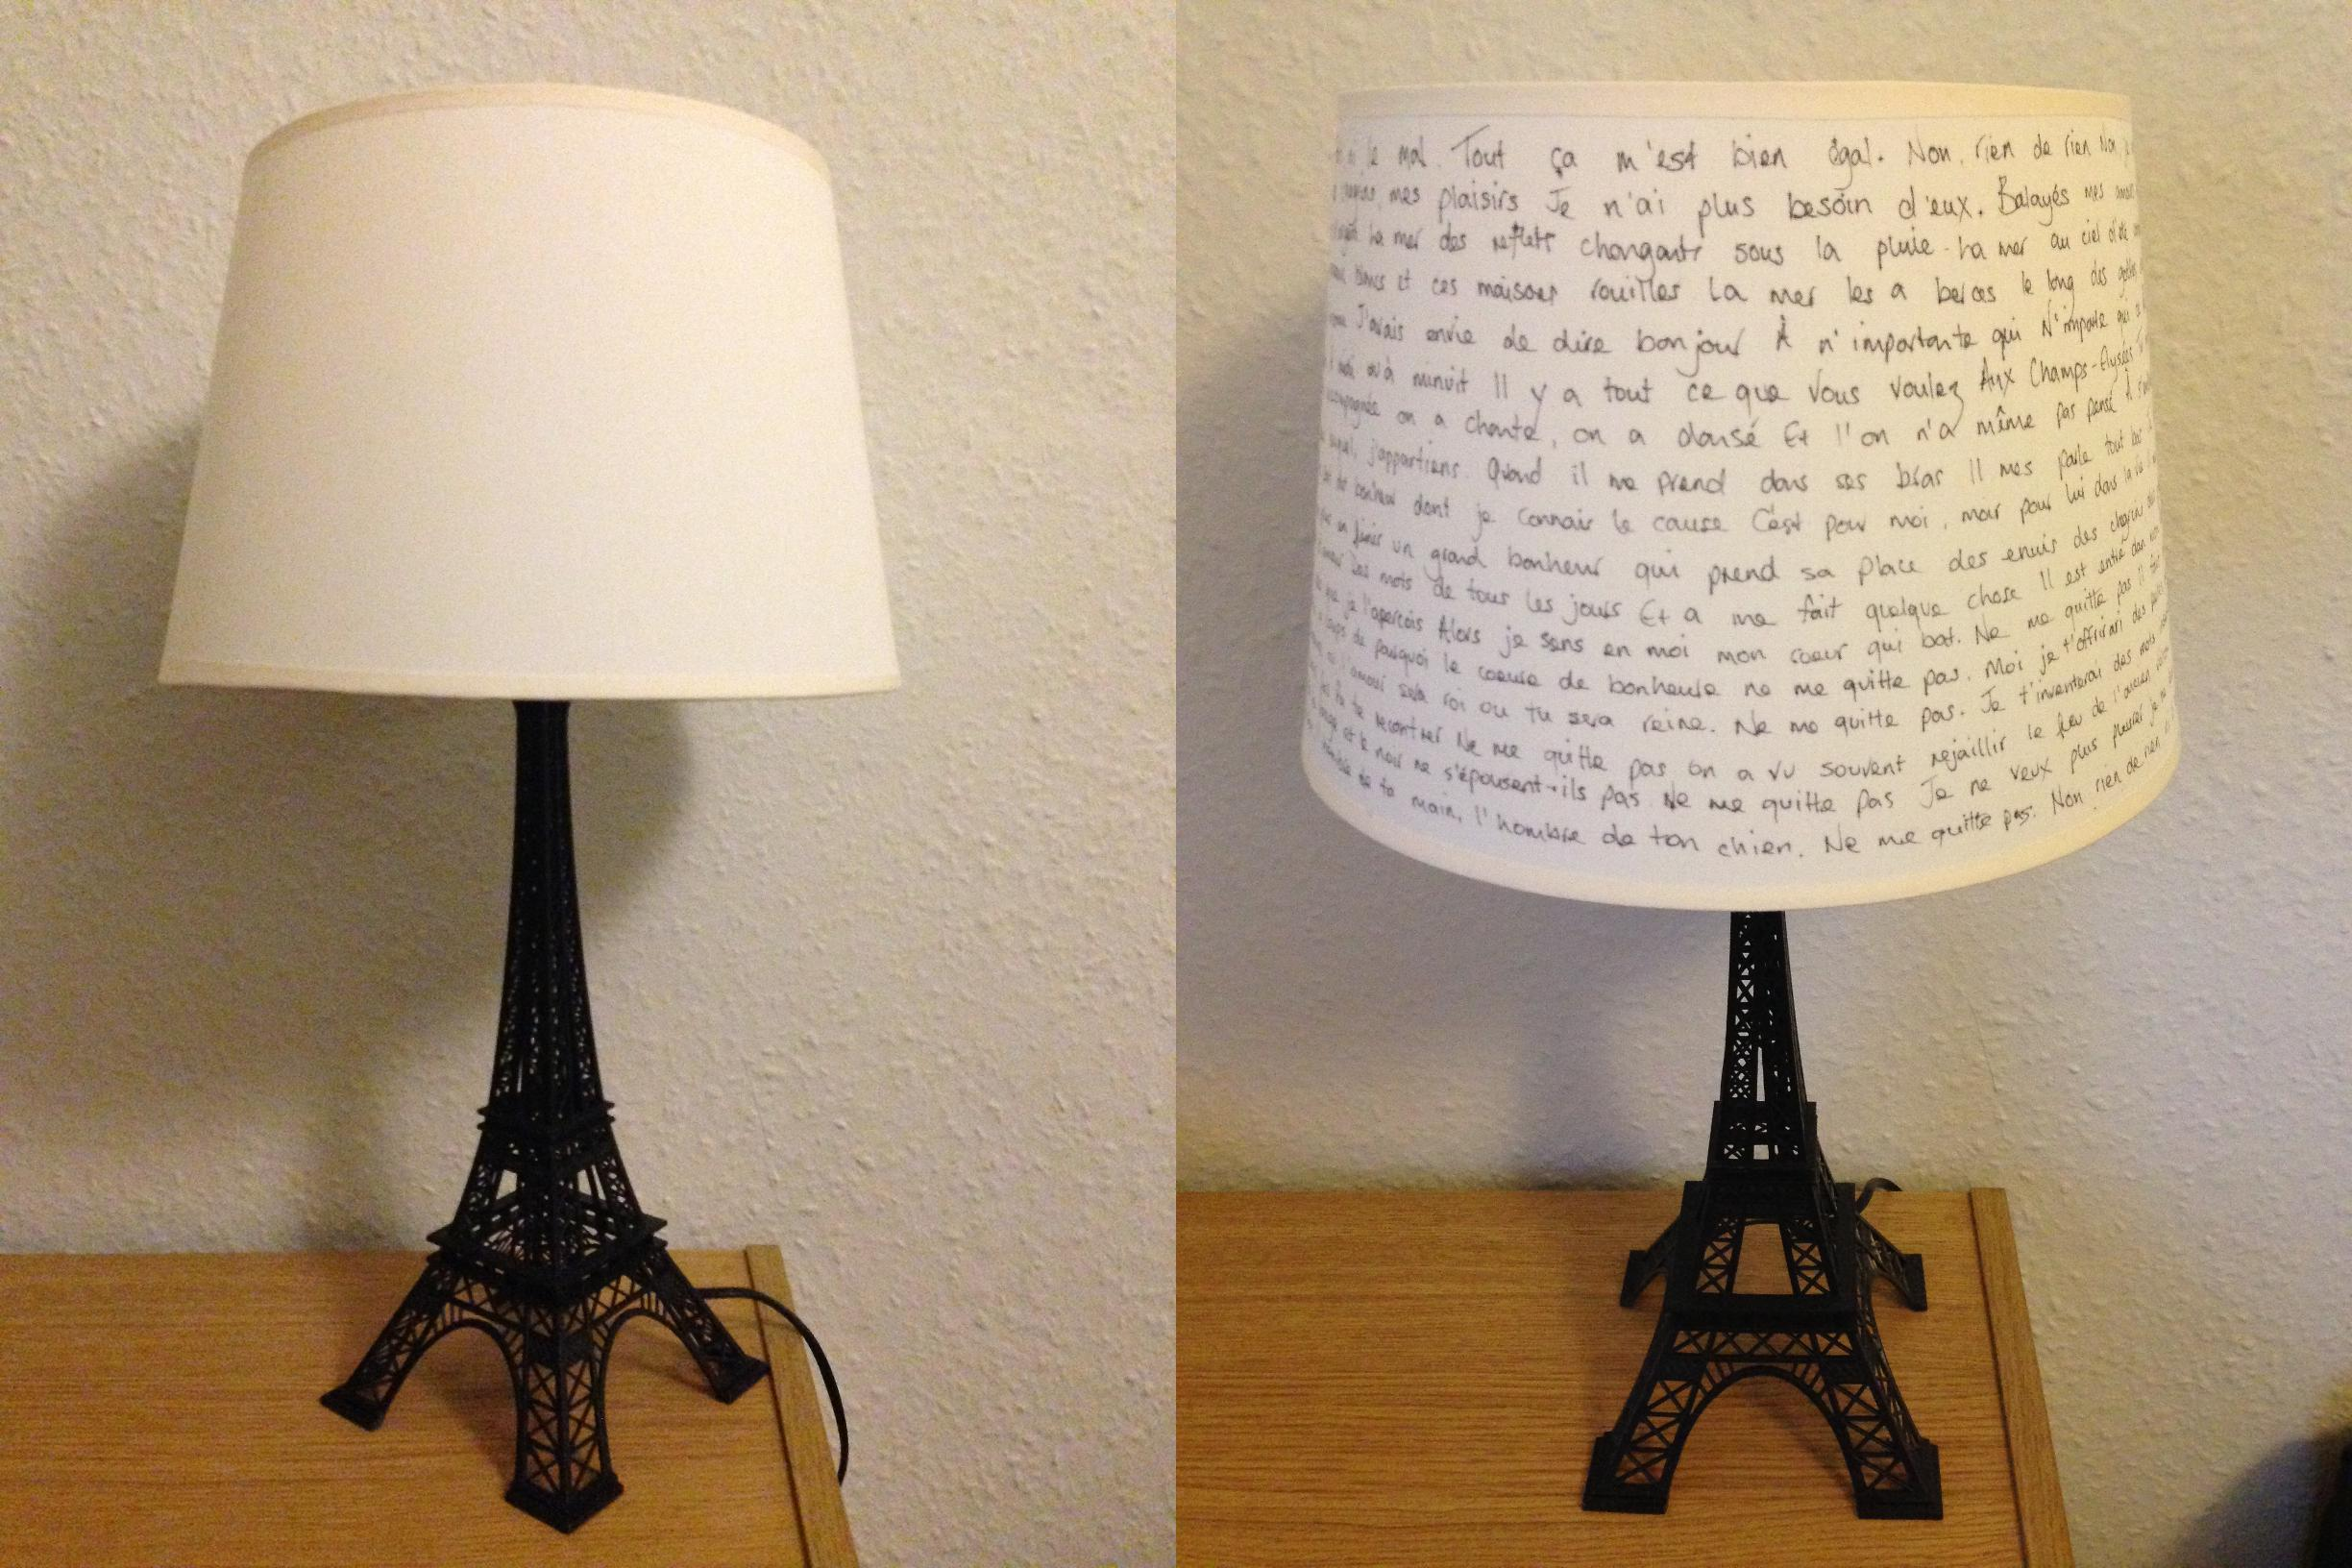 Marvelous Design Of The Brown Wooden Table Addd With White Lamp Shade Added With Eiffel Tower Lamp Ideas